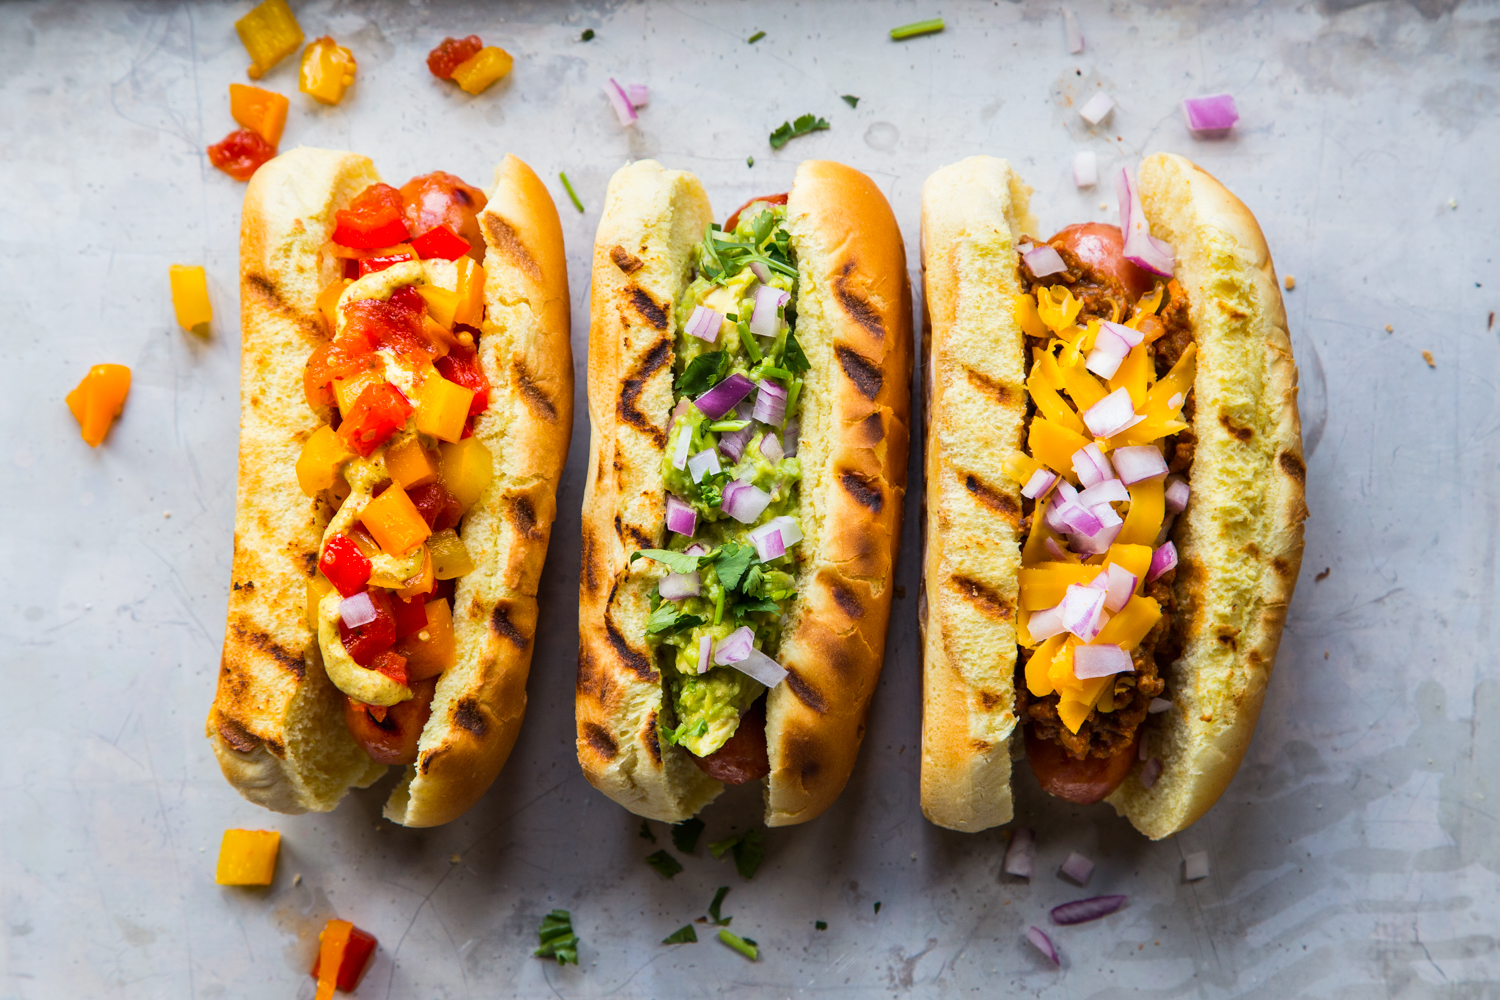 The Happy Diabetic S Healthy Hot Dog Topping Recipes